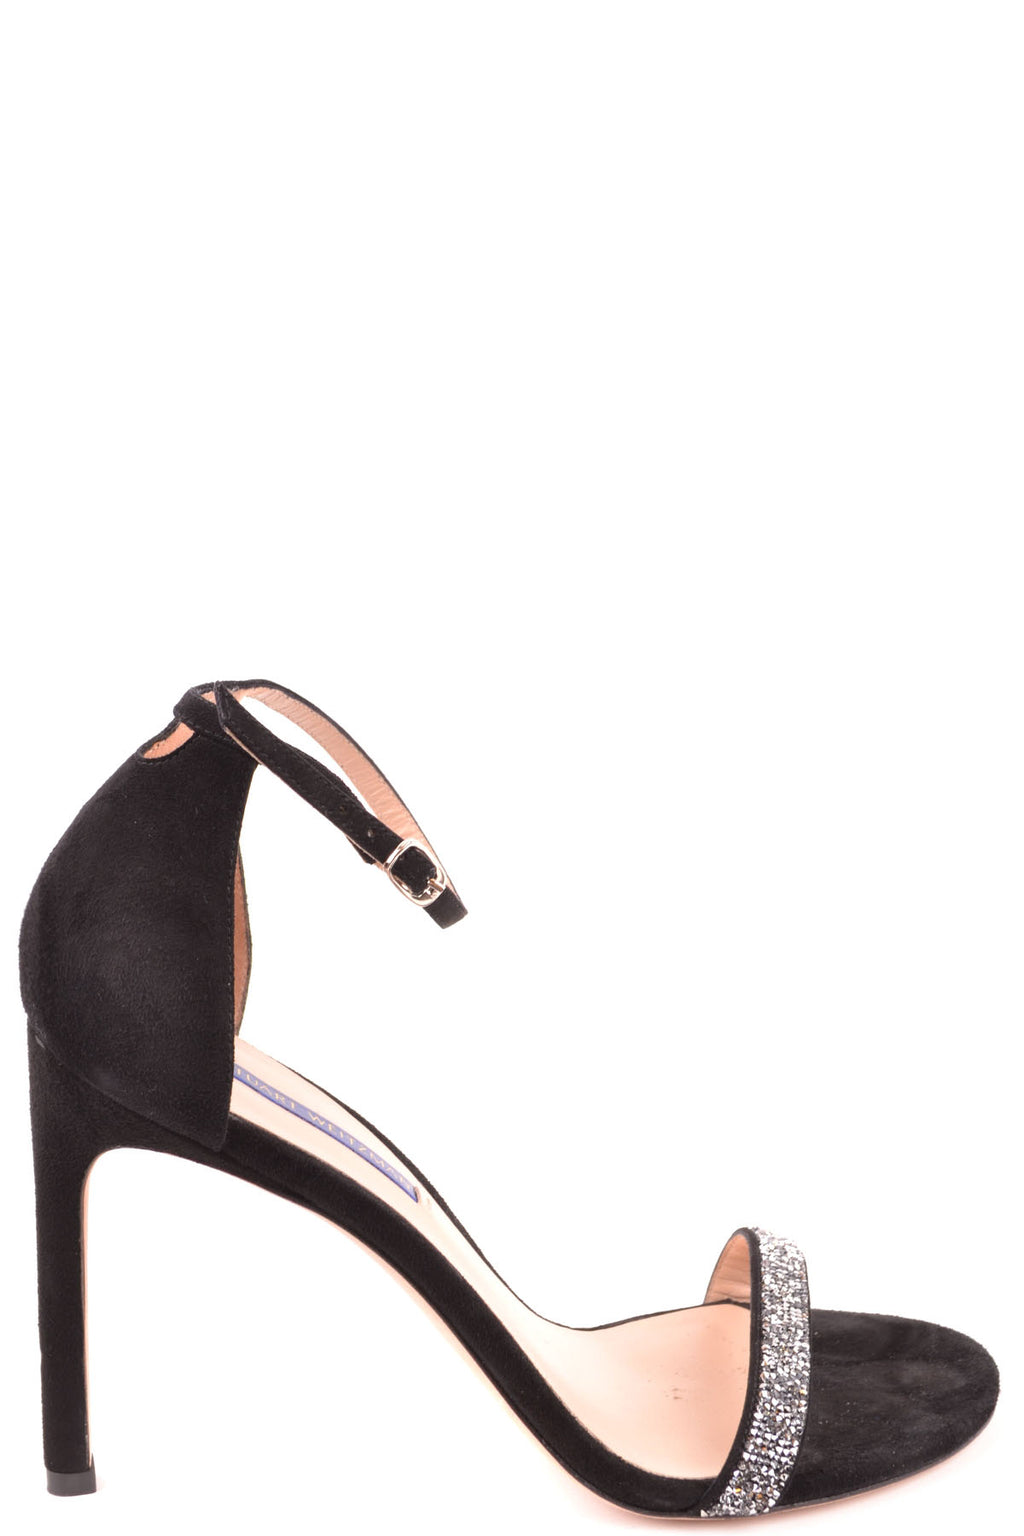 Shoes STUART WEITZMAN - KATANA FASHION BOUTIQUE